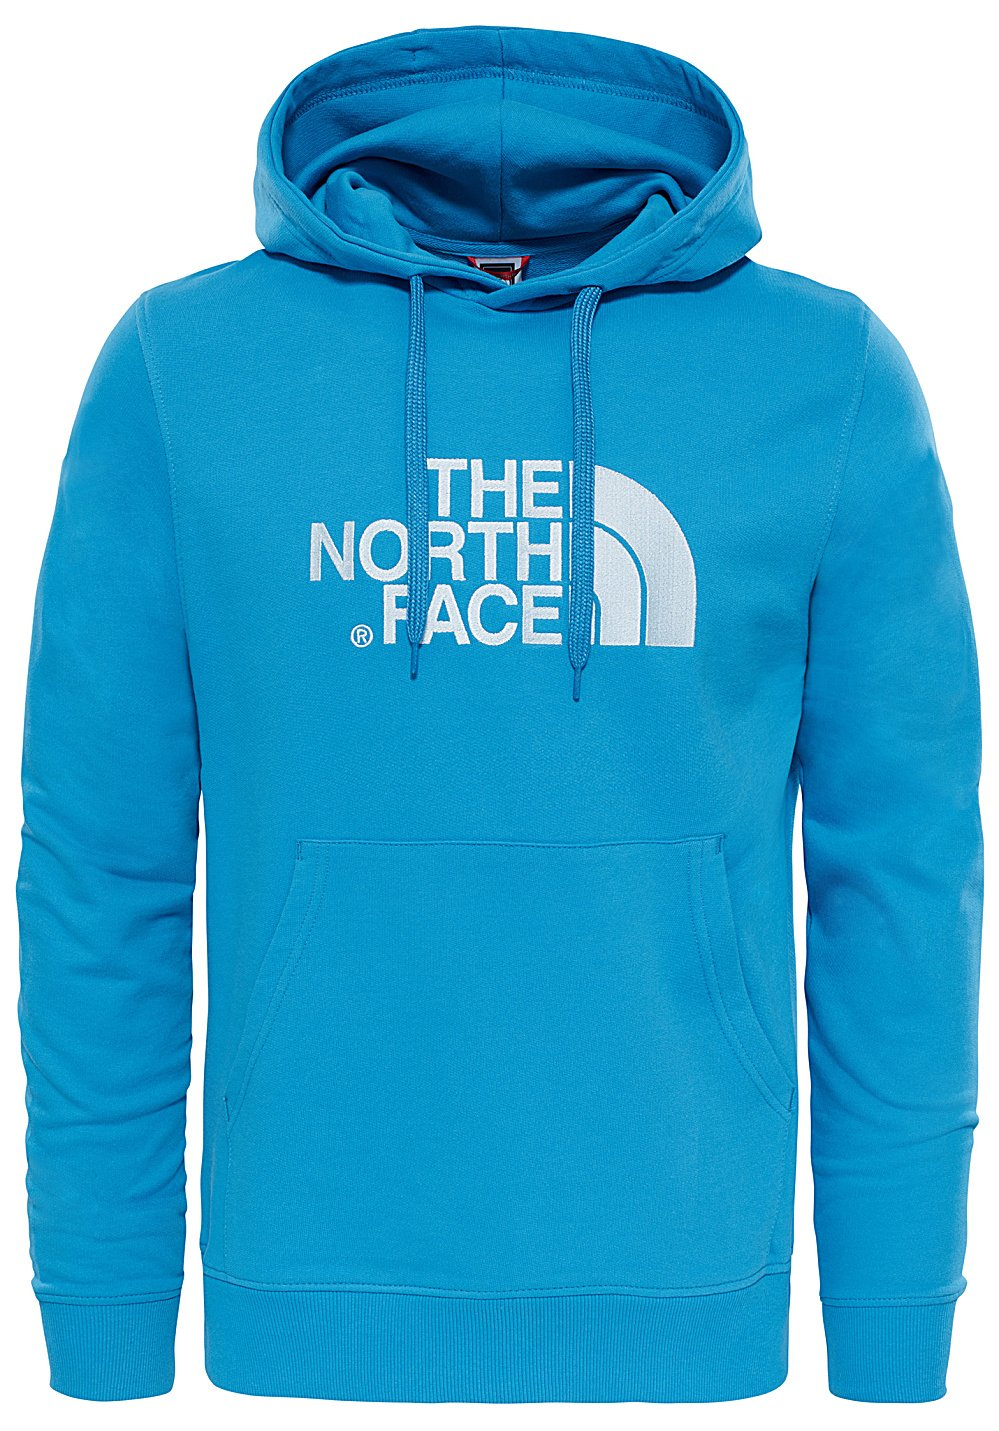 The North Face Herren Light Drew Peak Kapuzenpullover